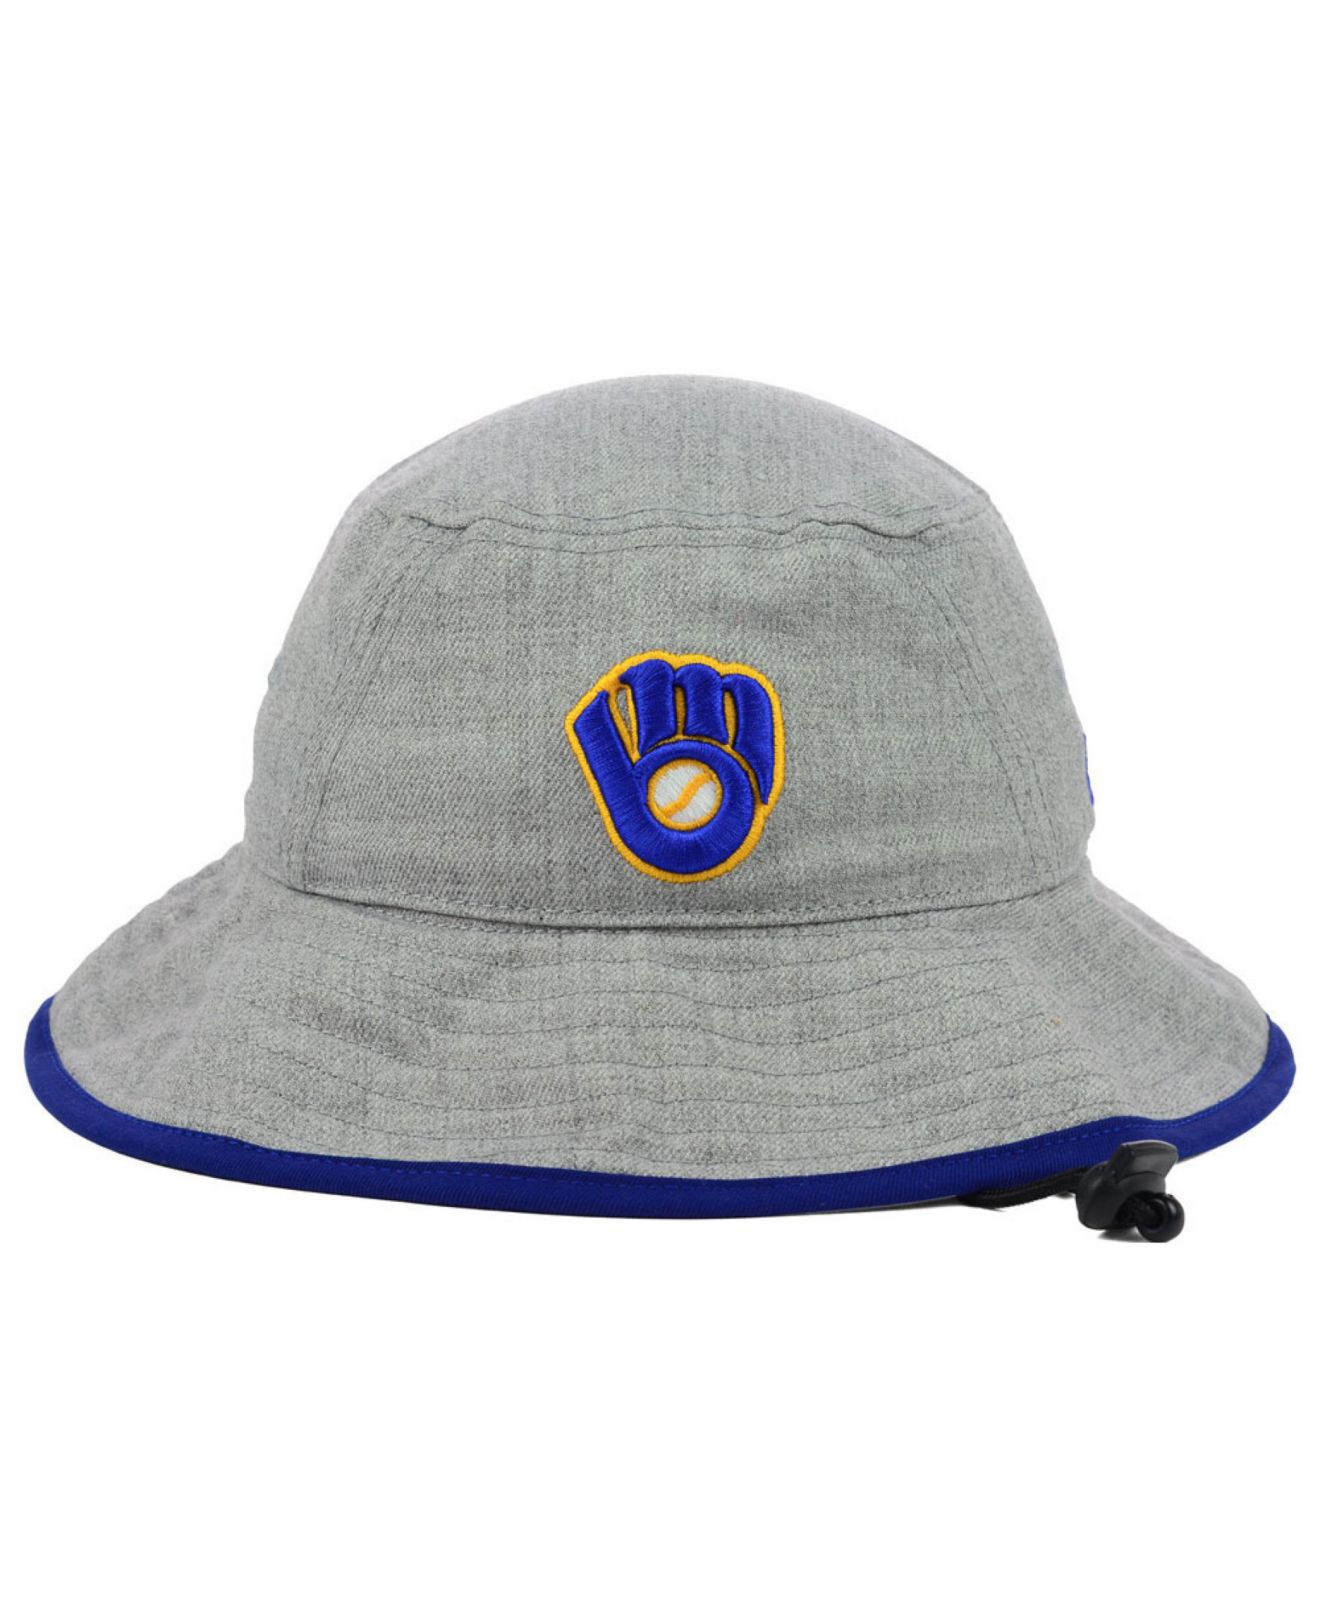 Lyst - KTZ Milwaukee Brewers Heather Tipped Bucket Hat in Gray for Men a75863e436c